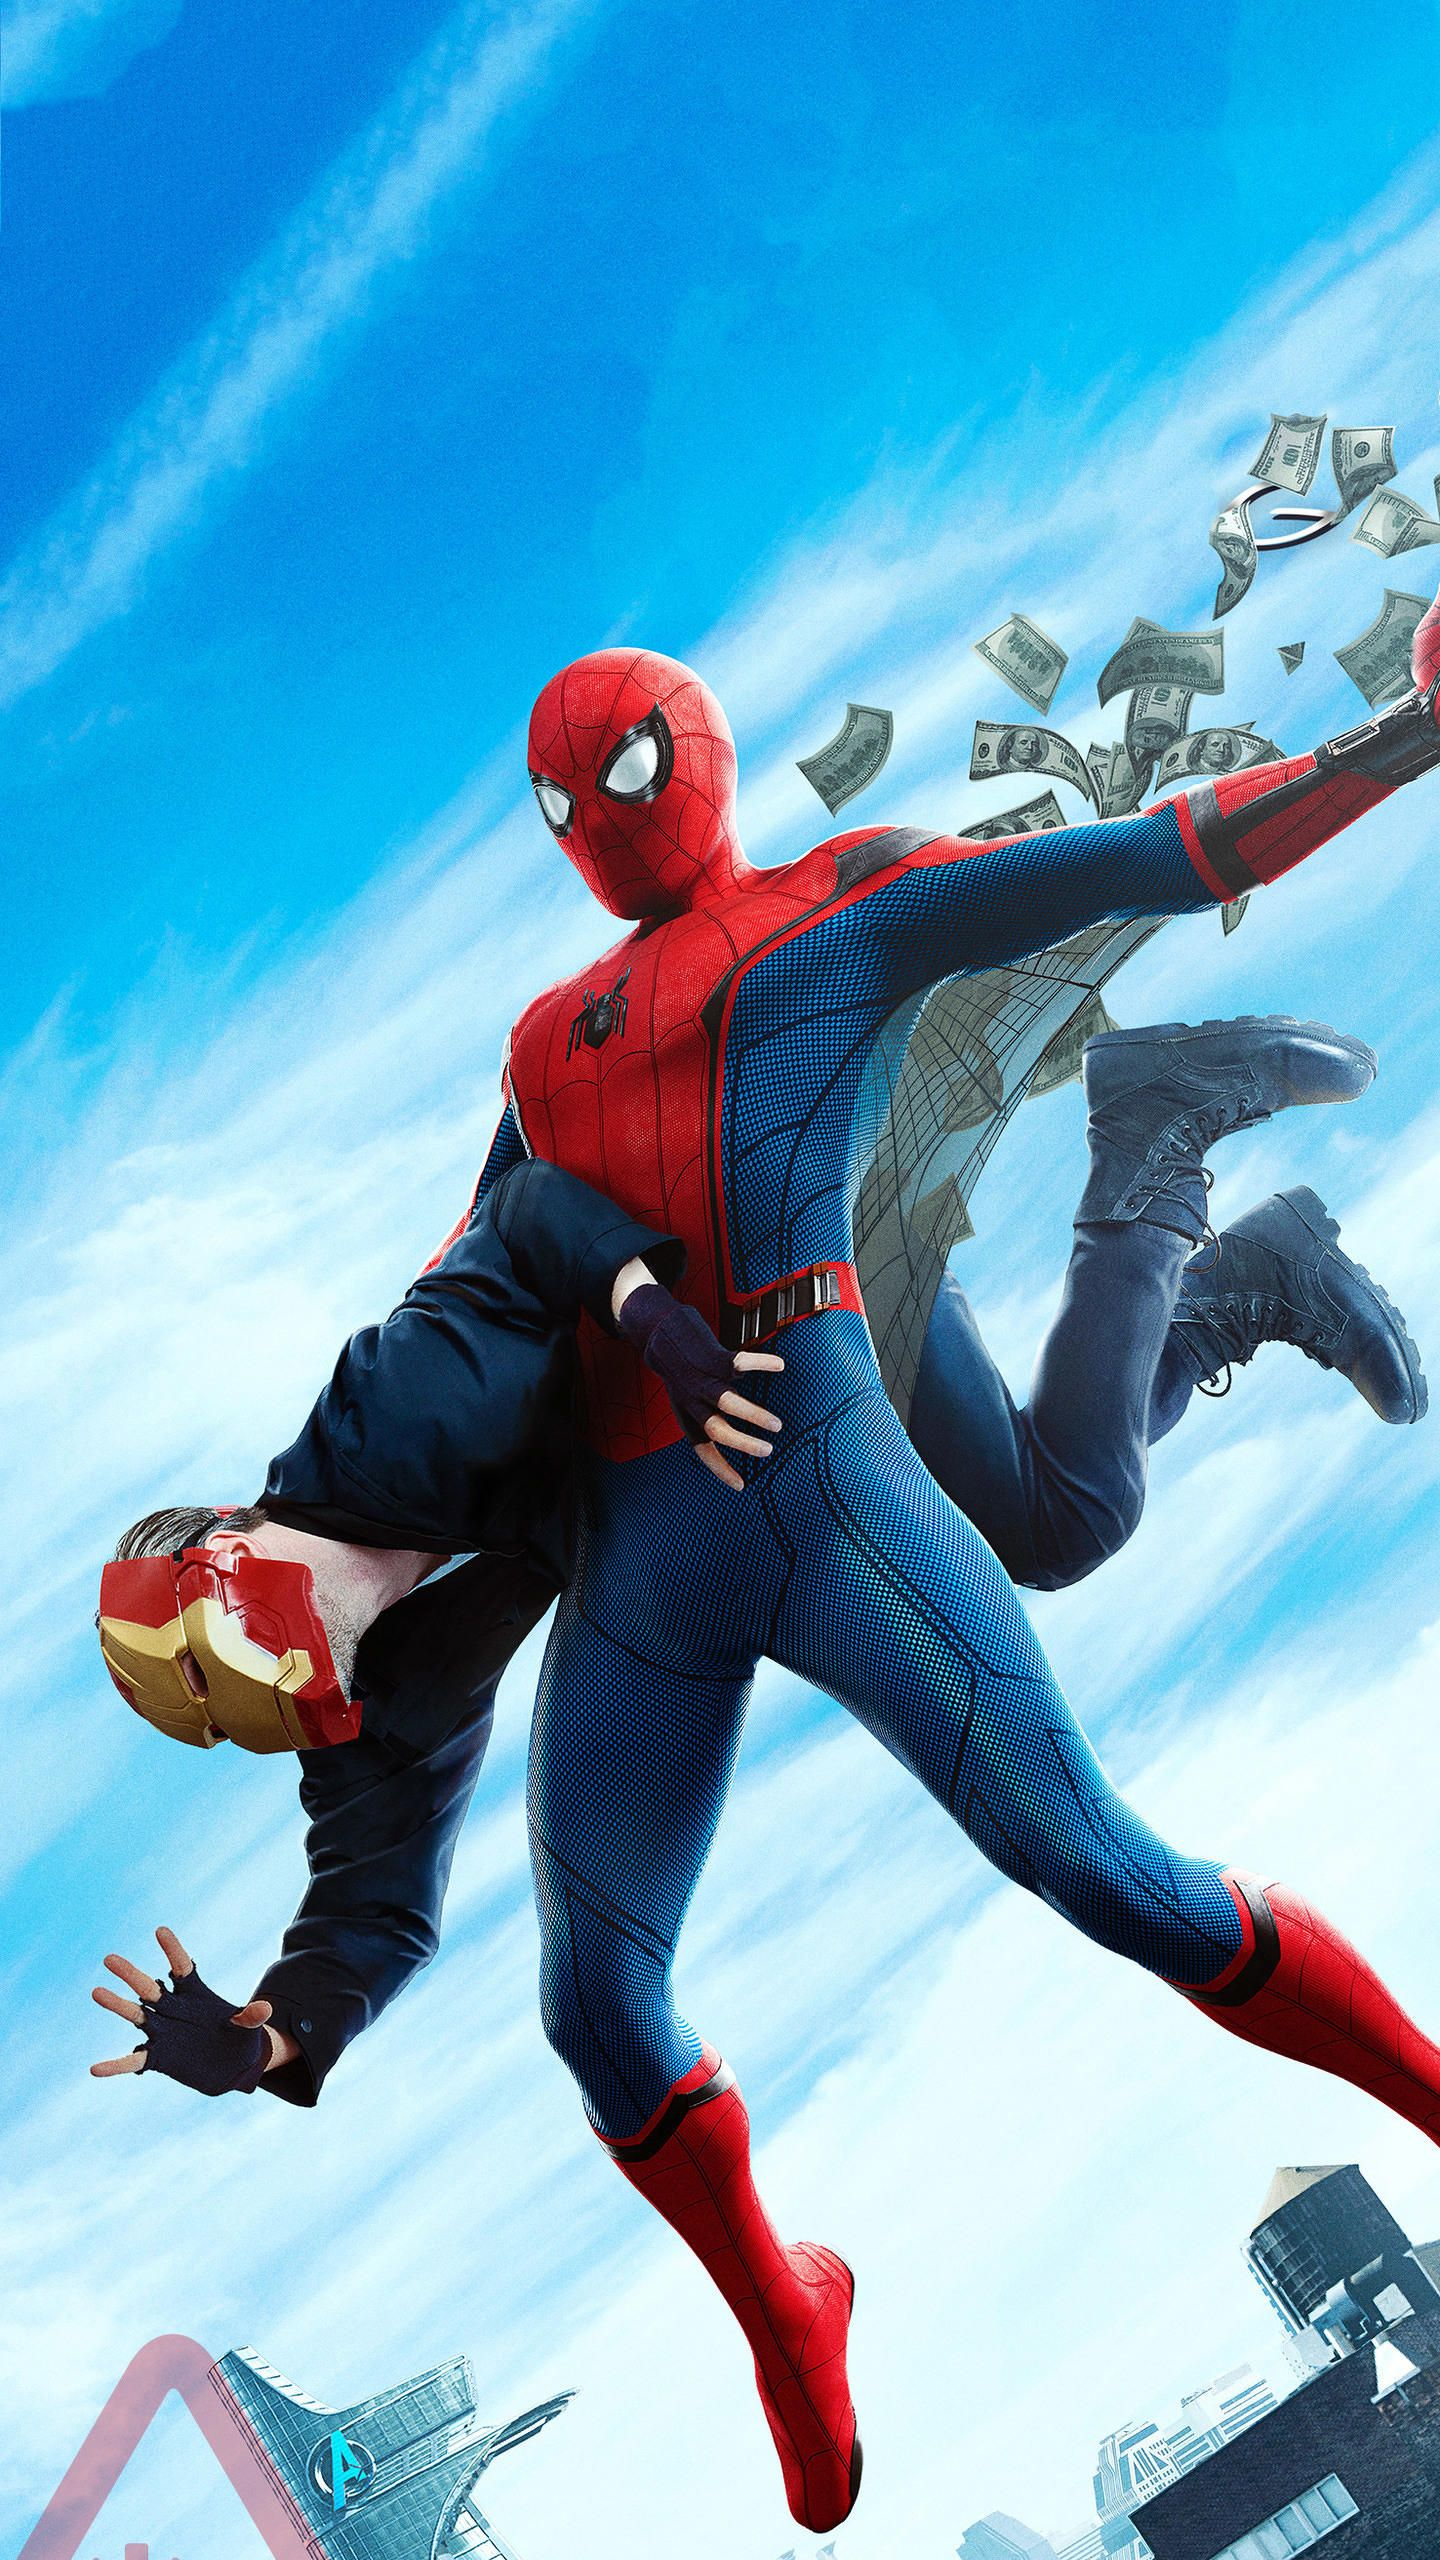 Spiderman Homecoming Final Poster Hd Movies Wallpapers Photos And Pictures Spiderman Movie Wallpapers Spiderman Homecoming